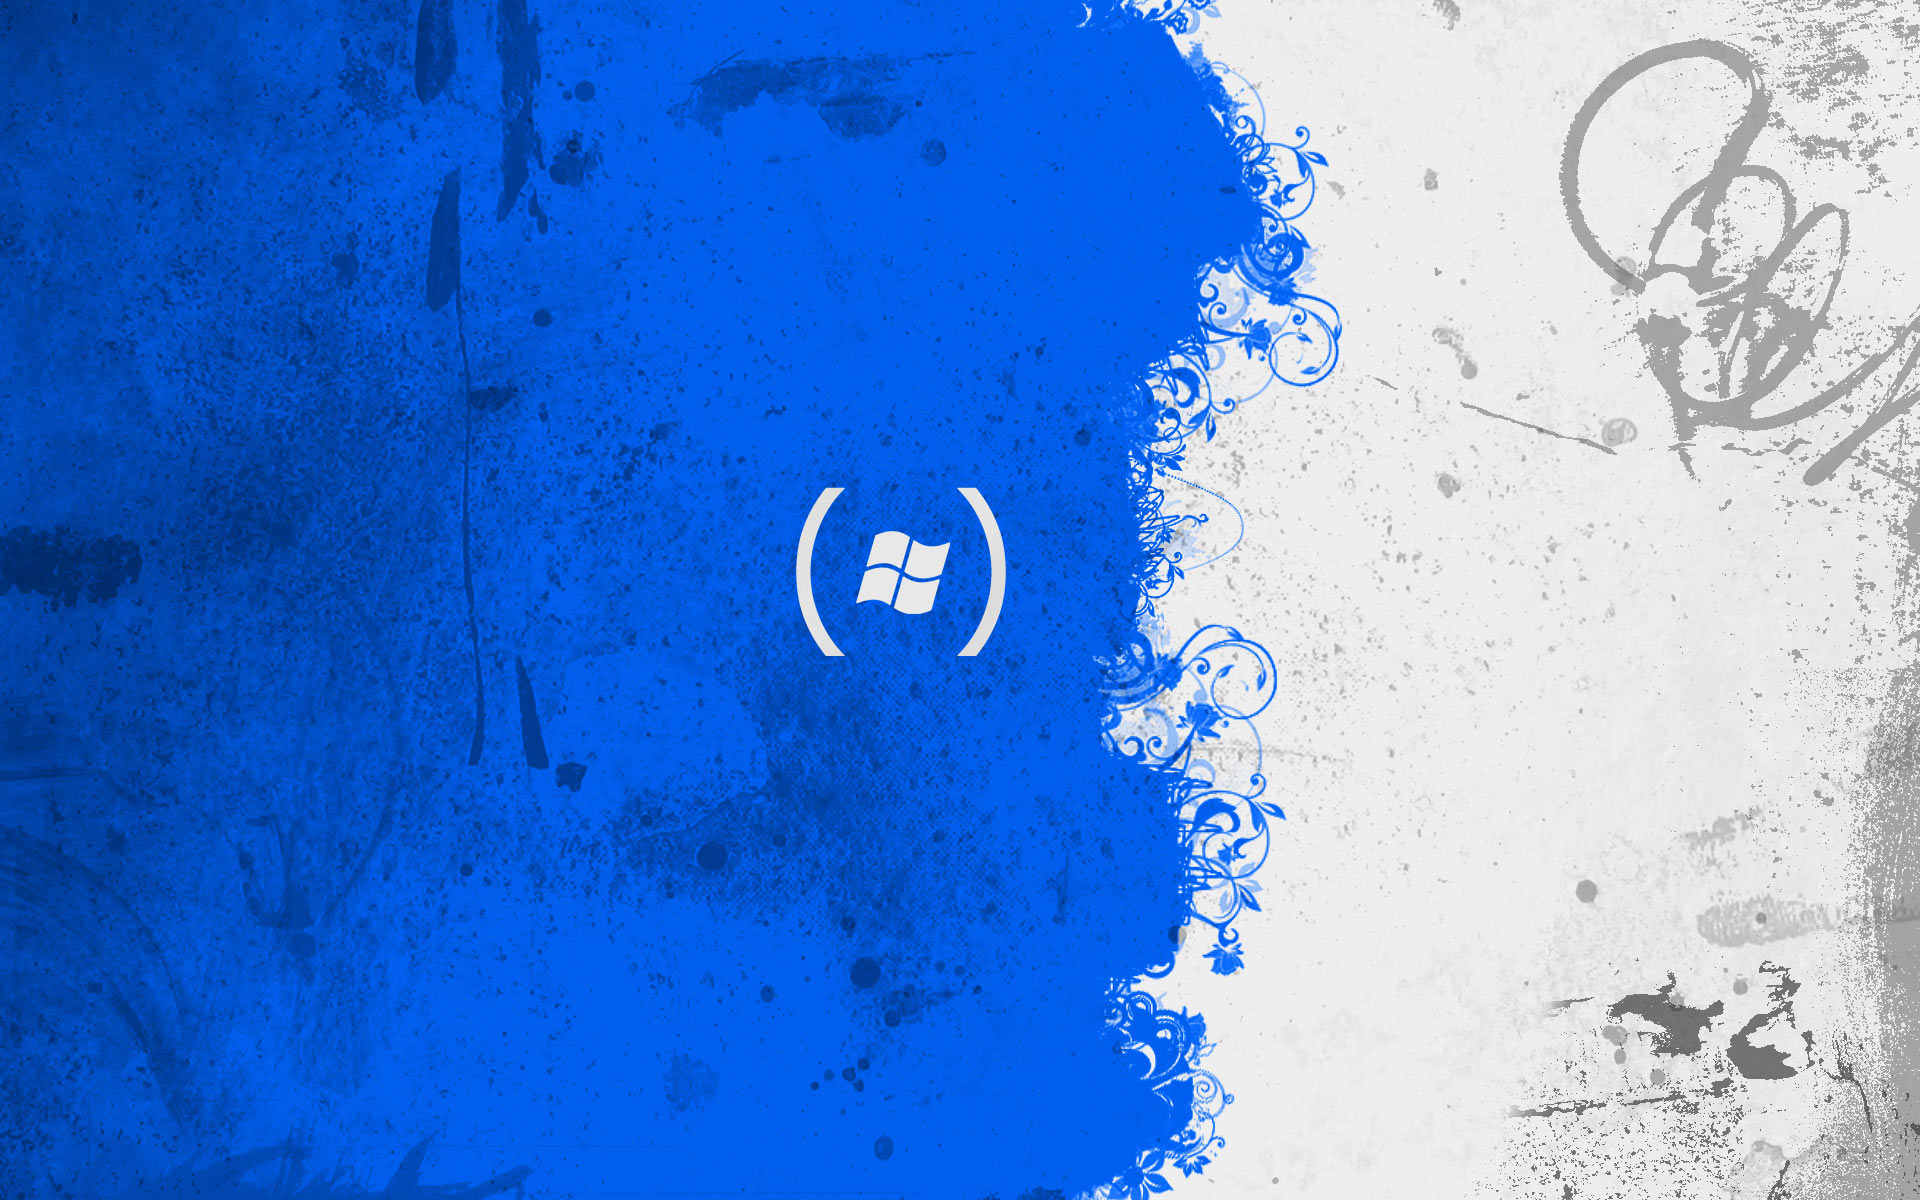 Abstract Blue Blue White Rhytm Pattern Android wallpaper Android